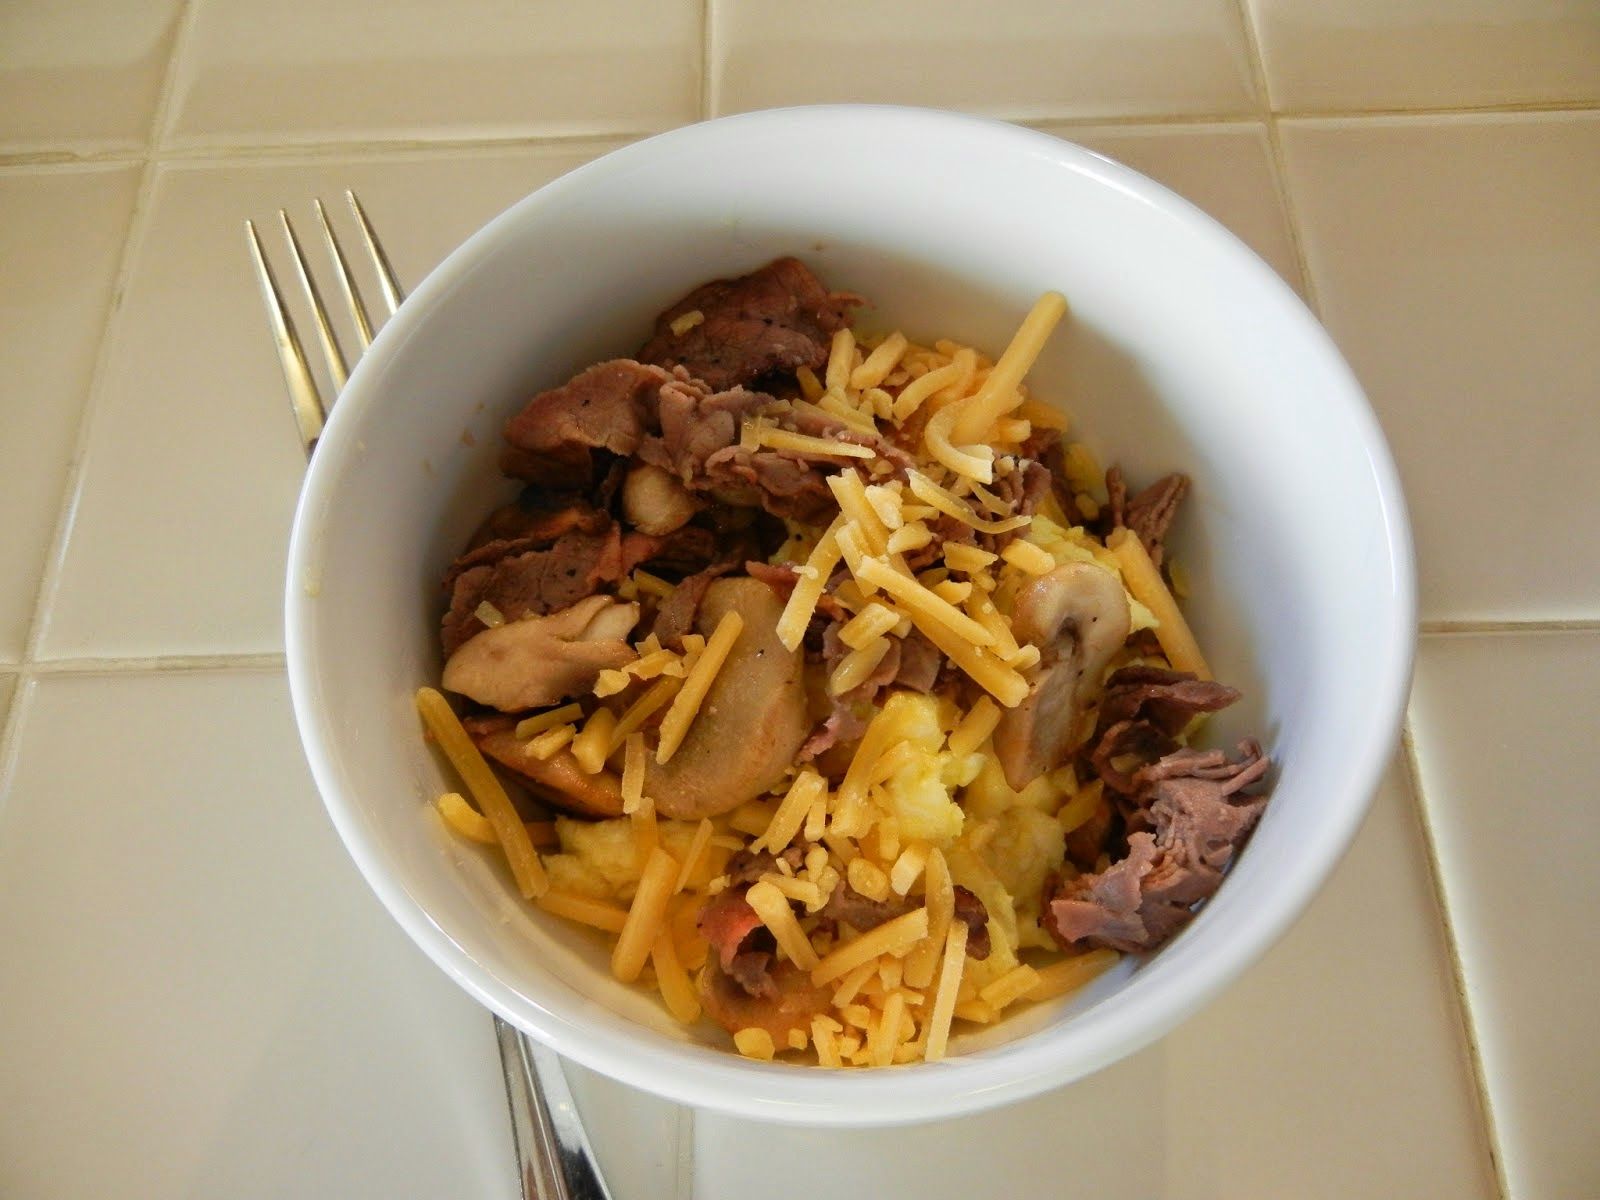 Steak+Mushrooms+Egg+Cheese+Bowl+(1) Weight Loss Recipes 5 Things to Do With Cold Cuts